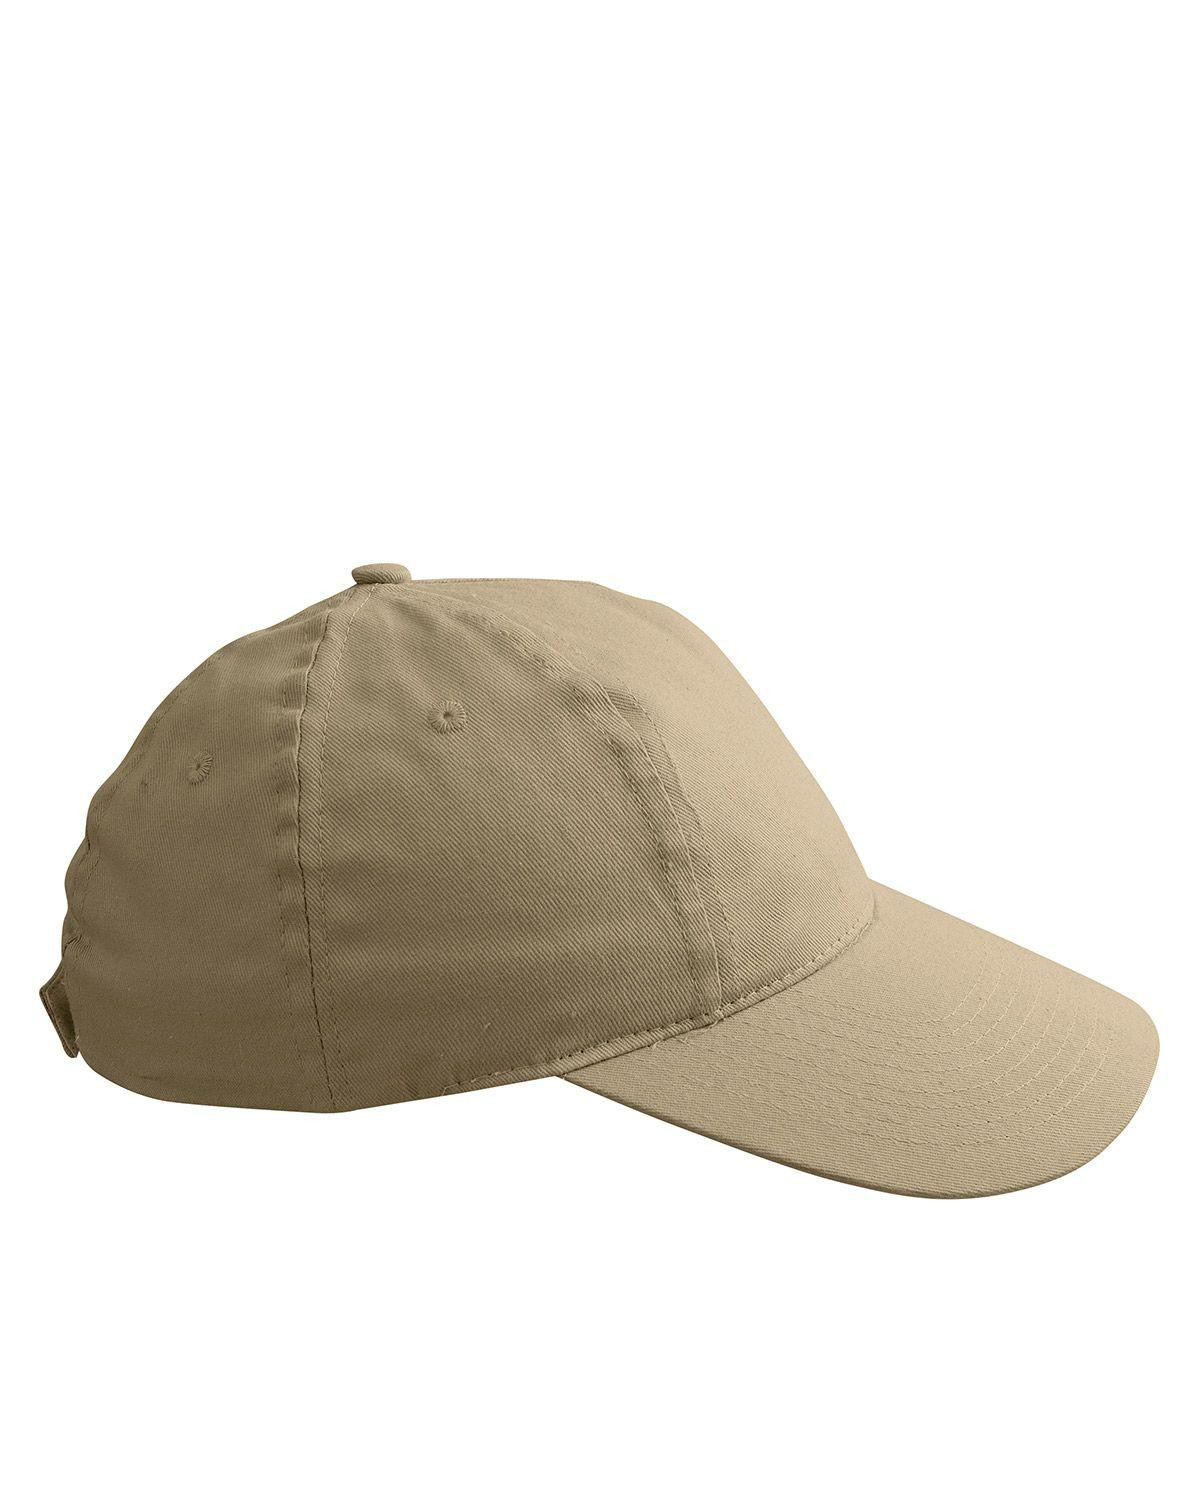 Image of   ID Golf Kasket (Sand, One Size)